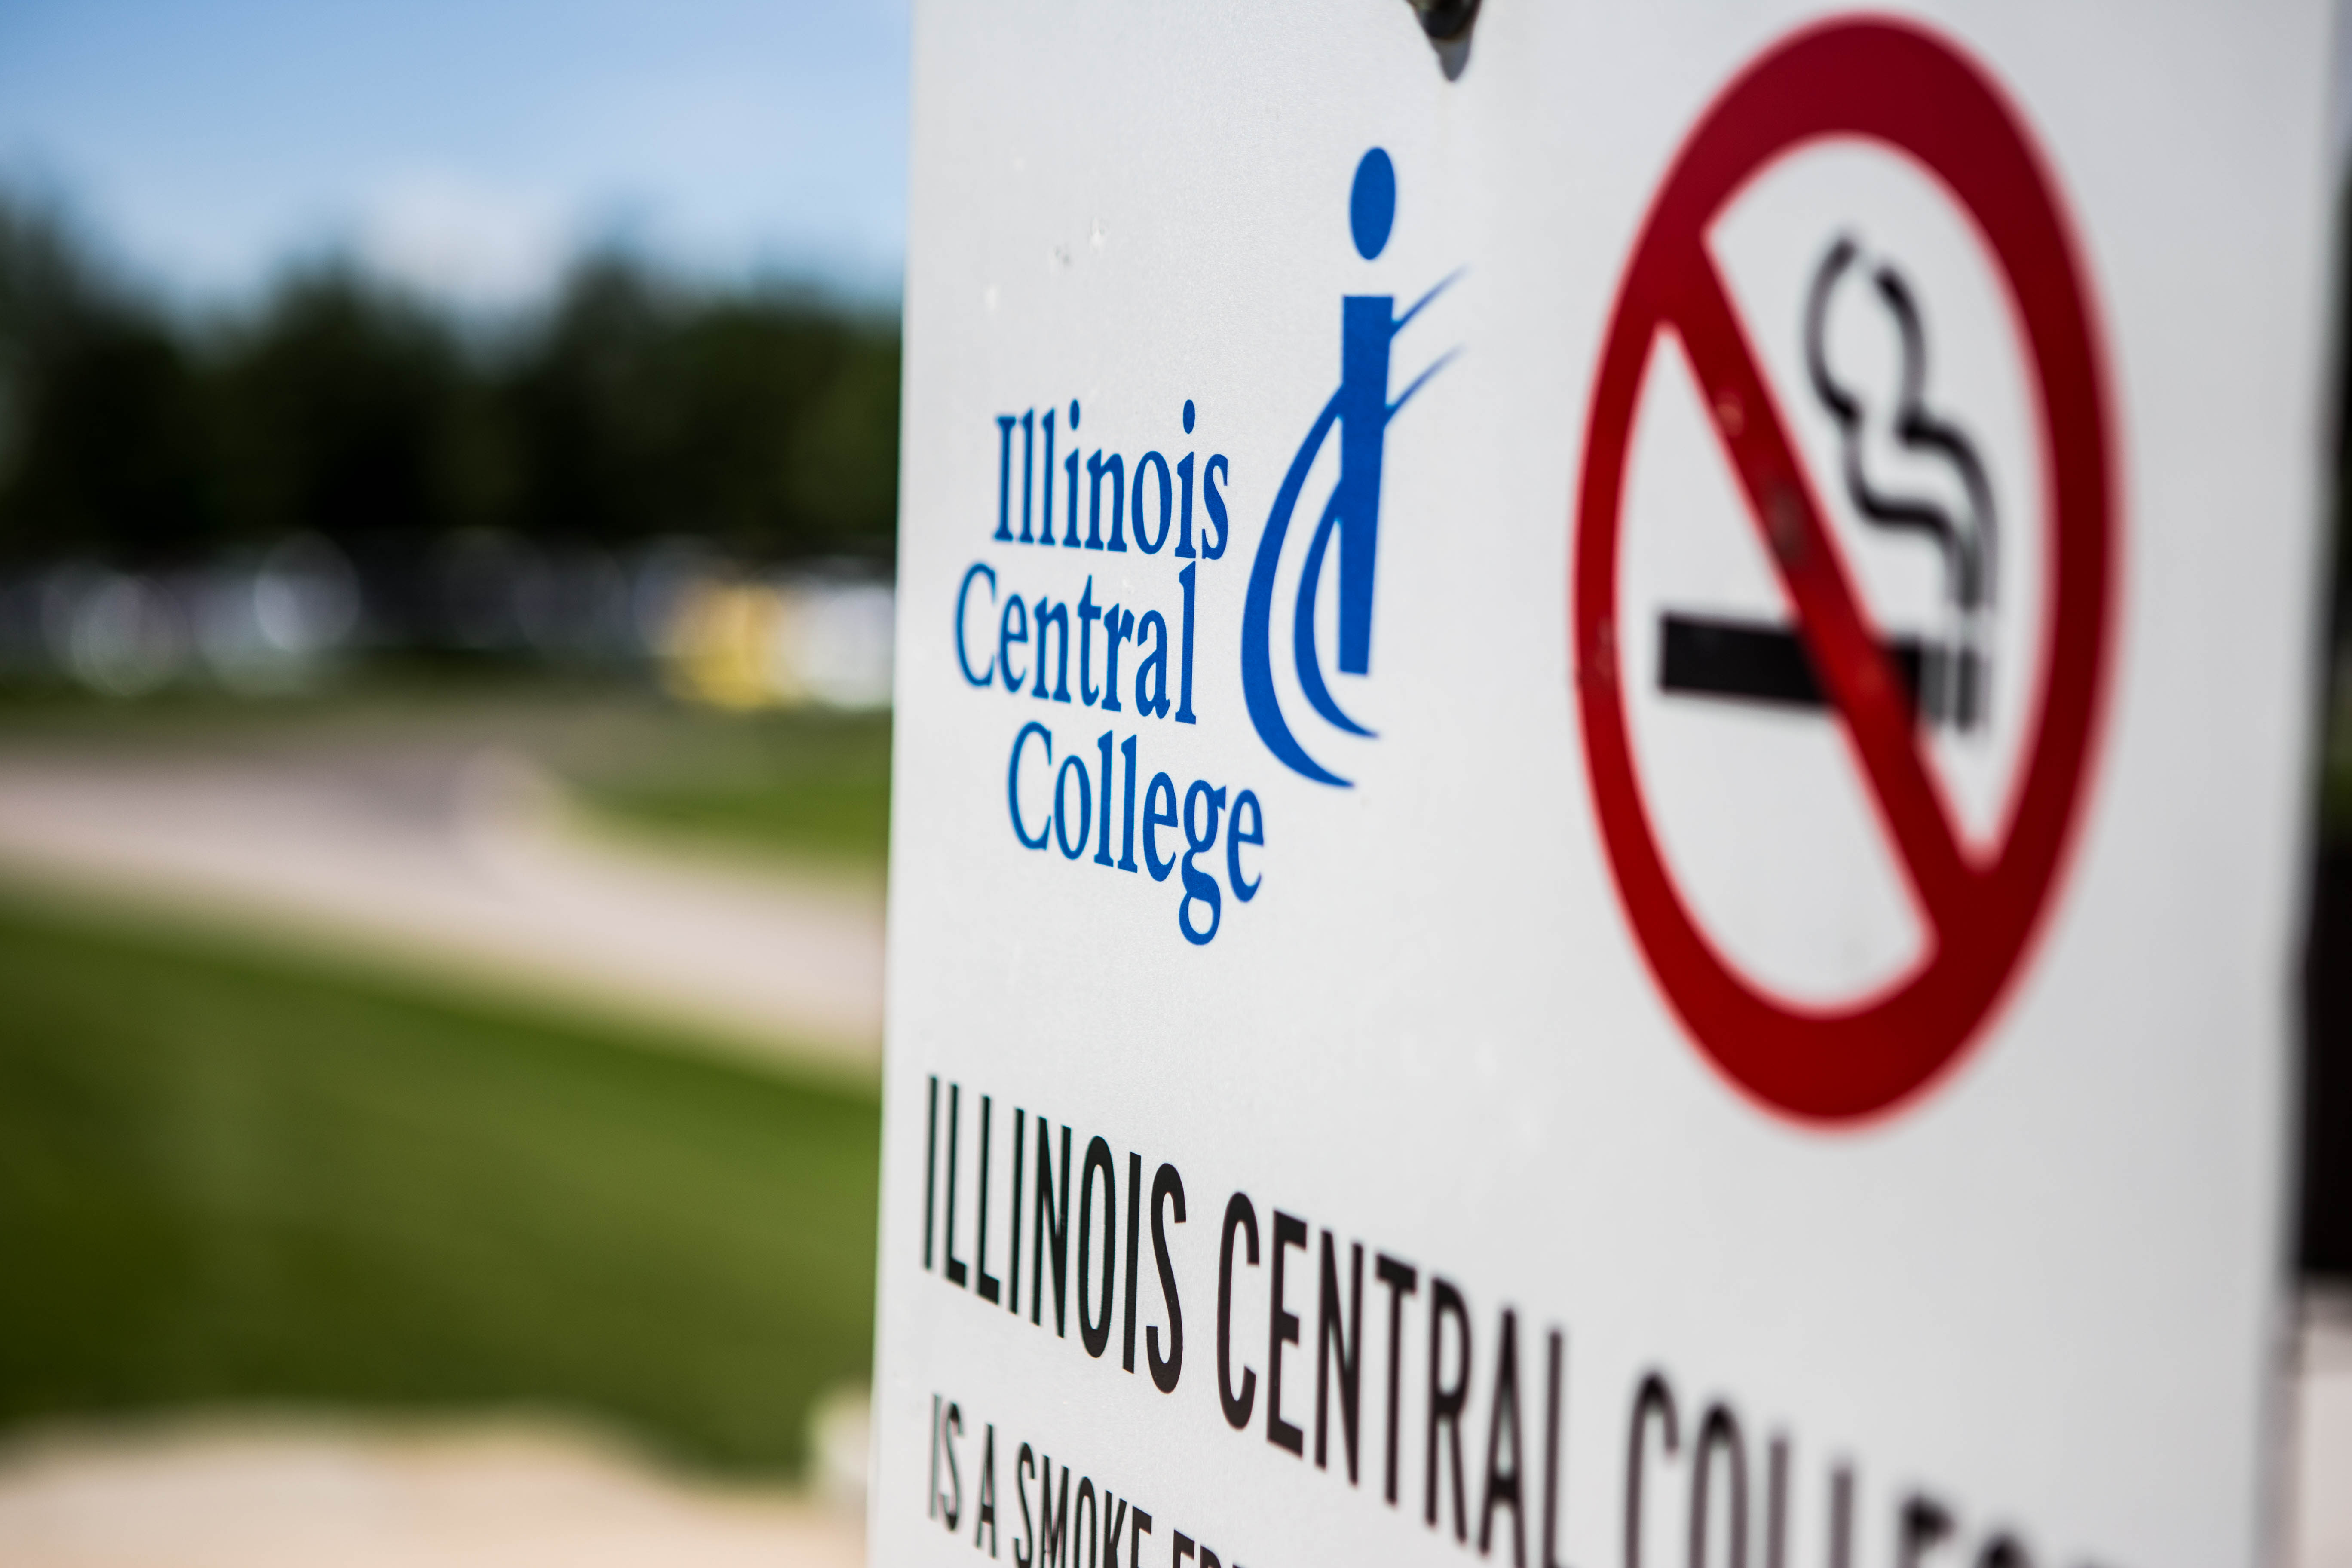 No to smoking, yes to tuition